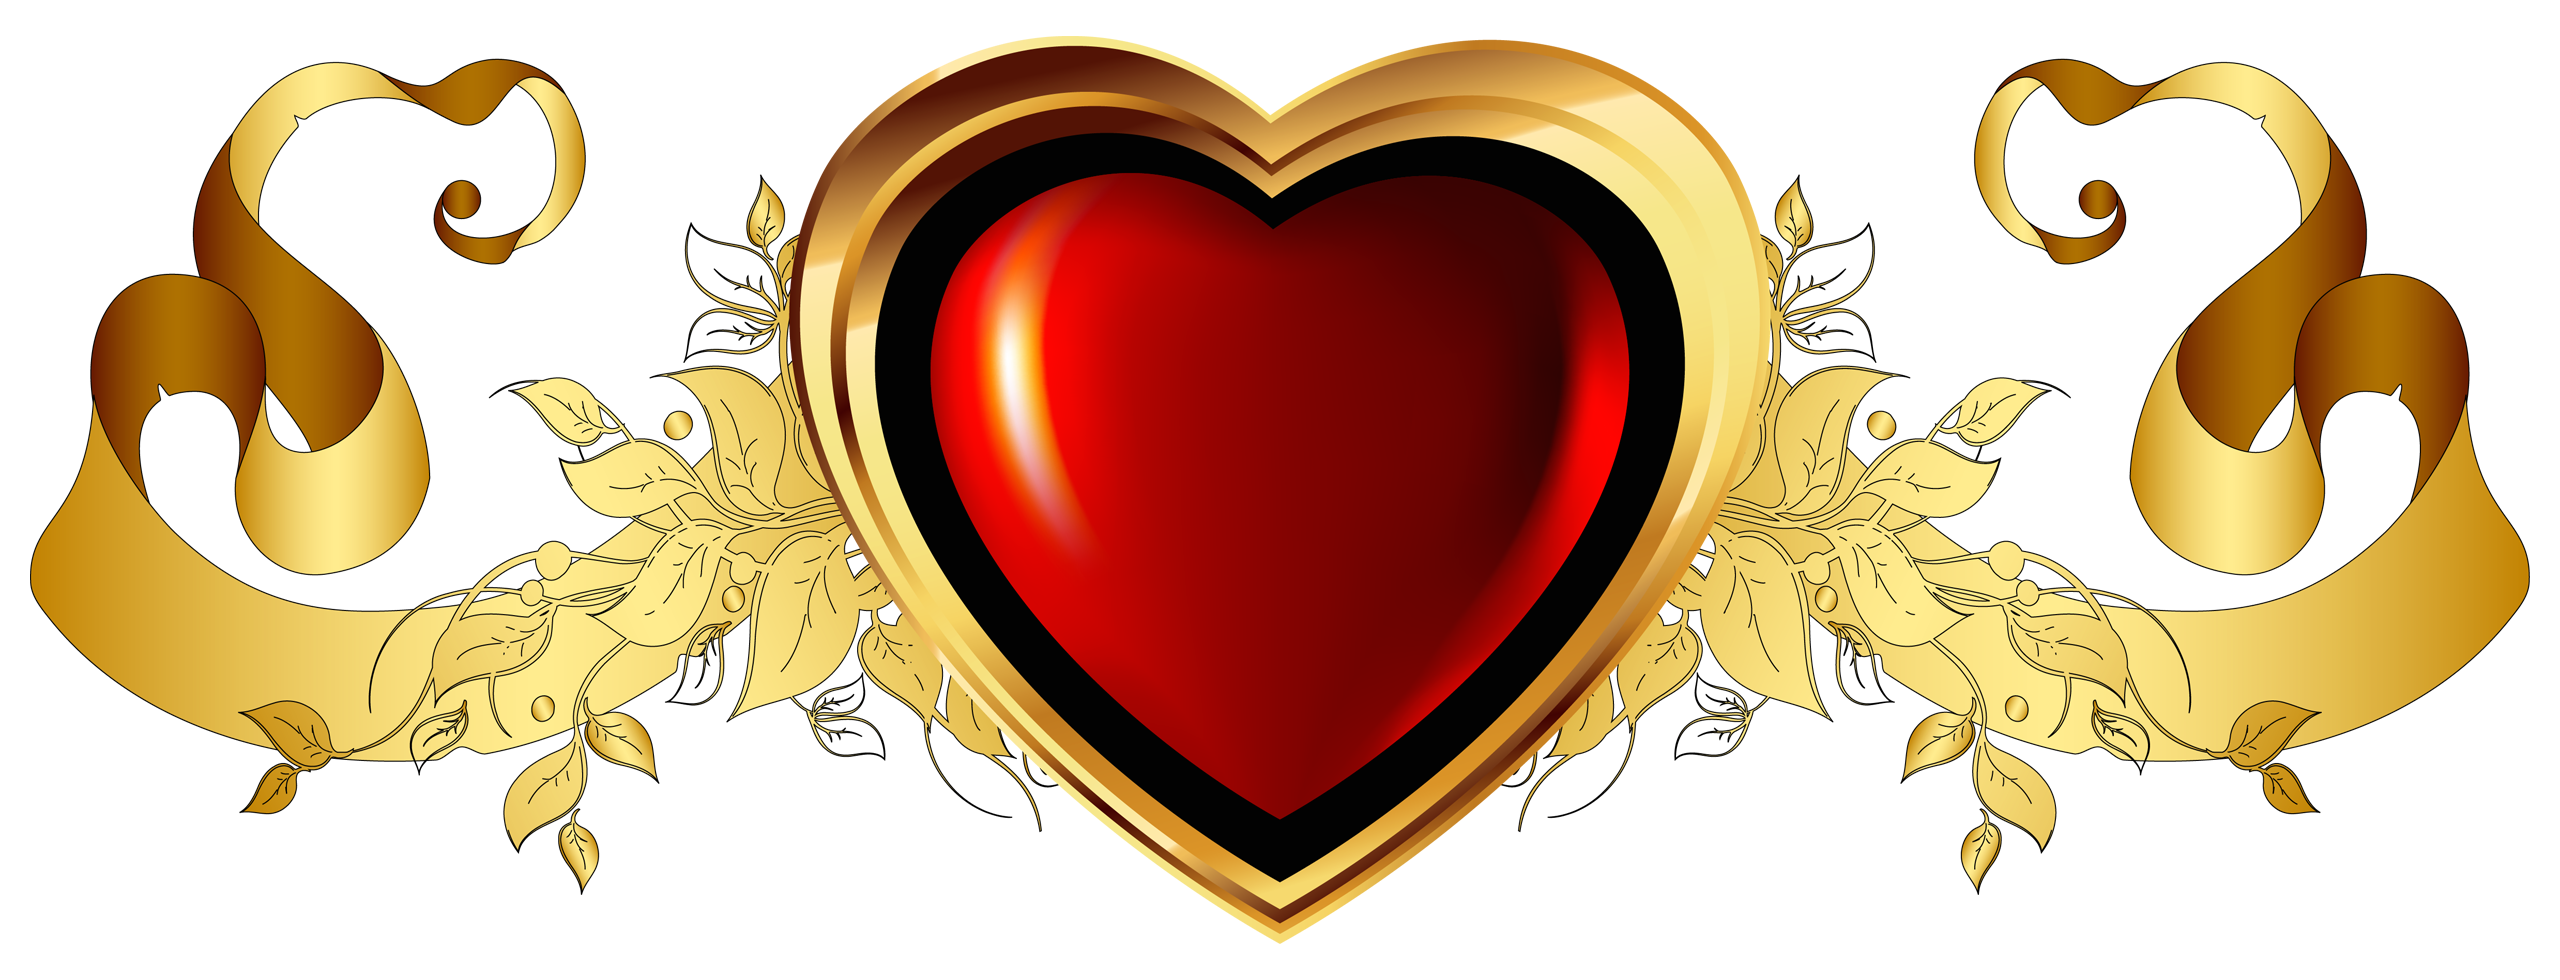 image large red heart with gold banner element clipart